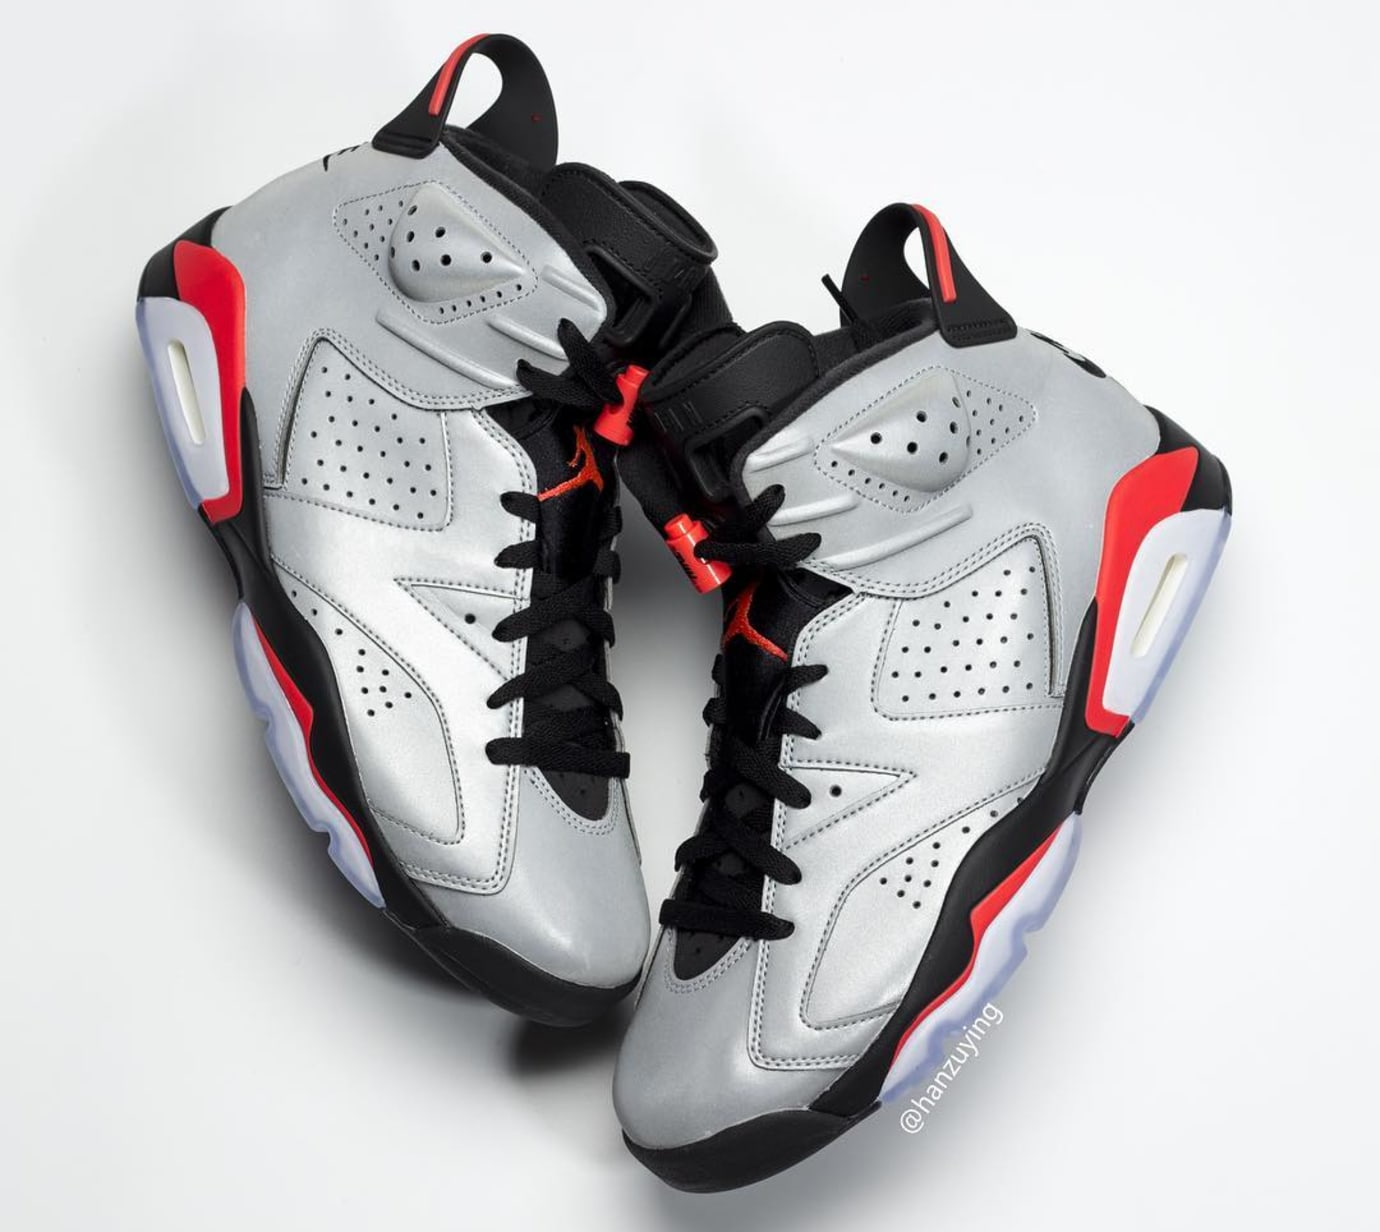 baa6be32f04cd8 Air Jordan 6 Retro  Reflective Infrared  CI4072-001